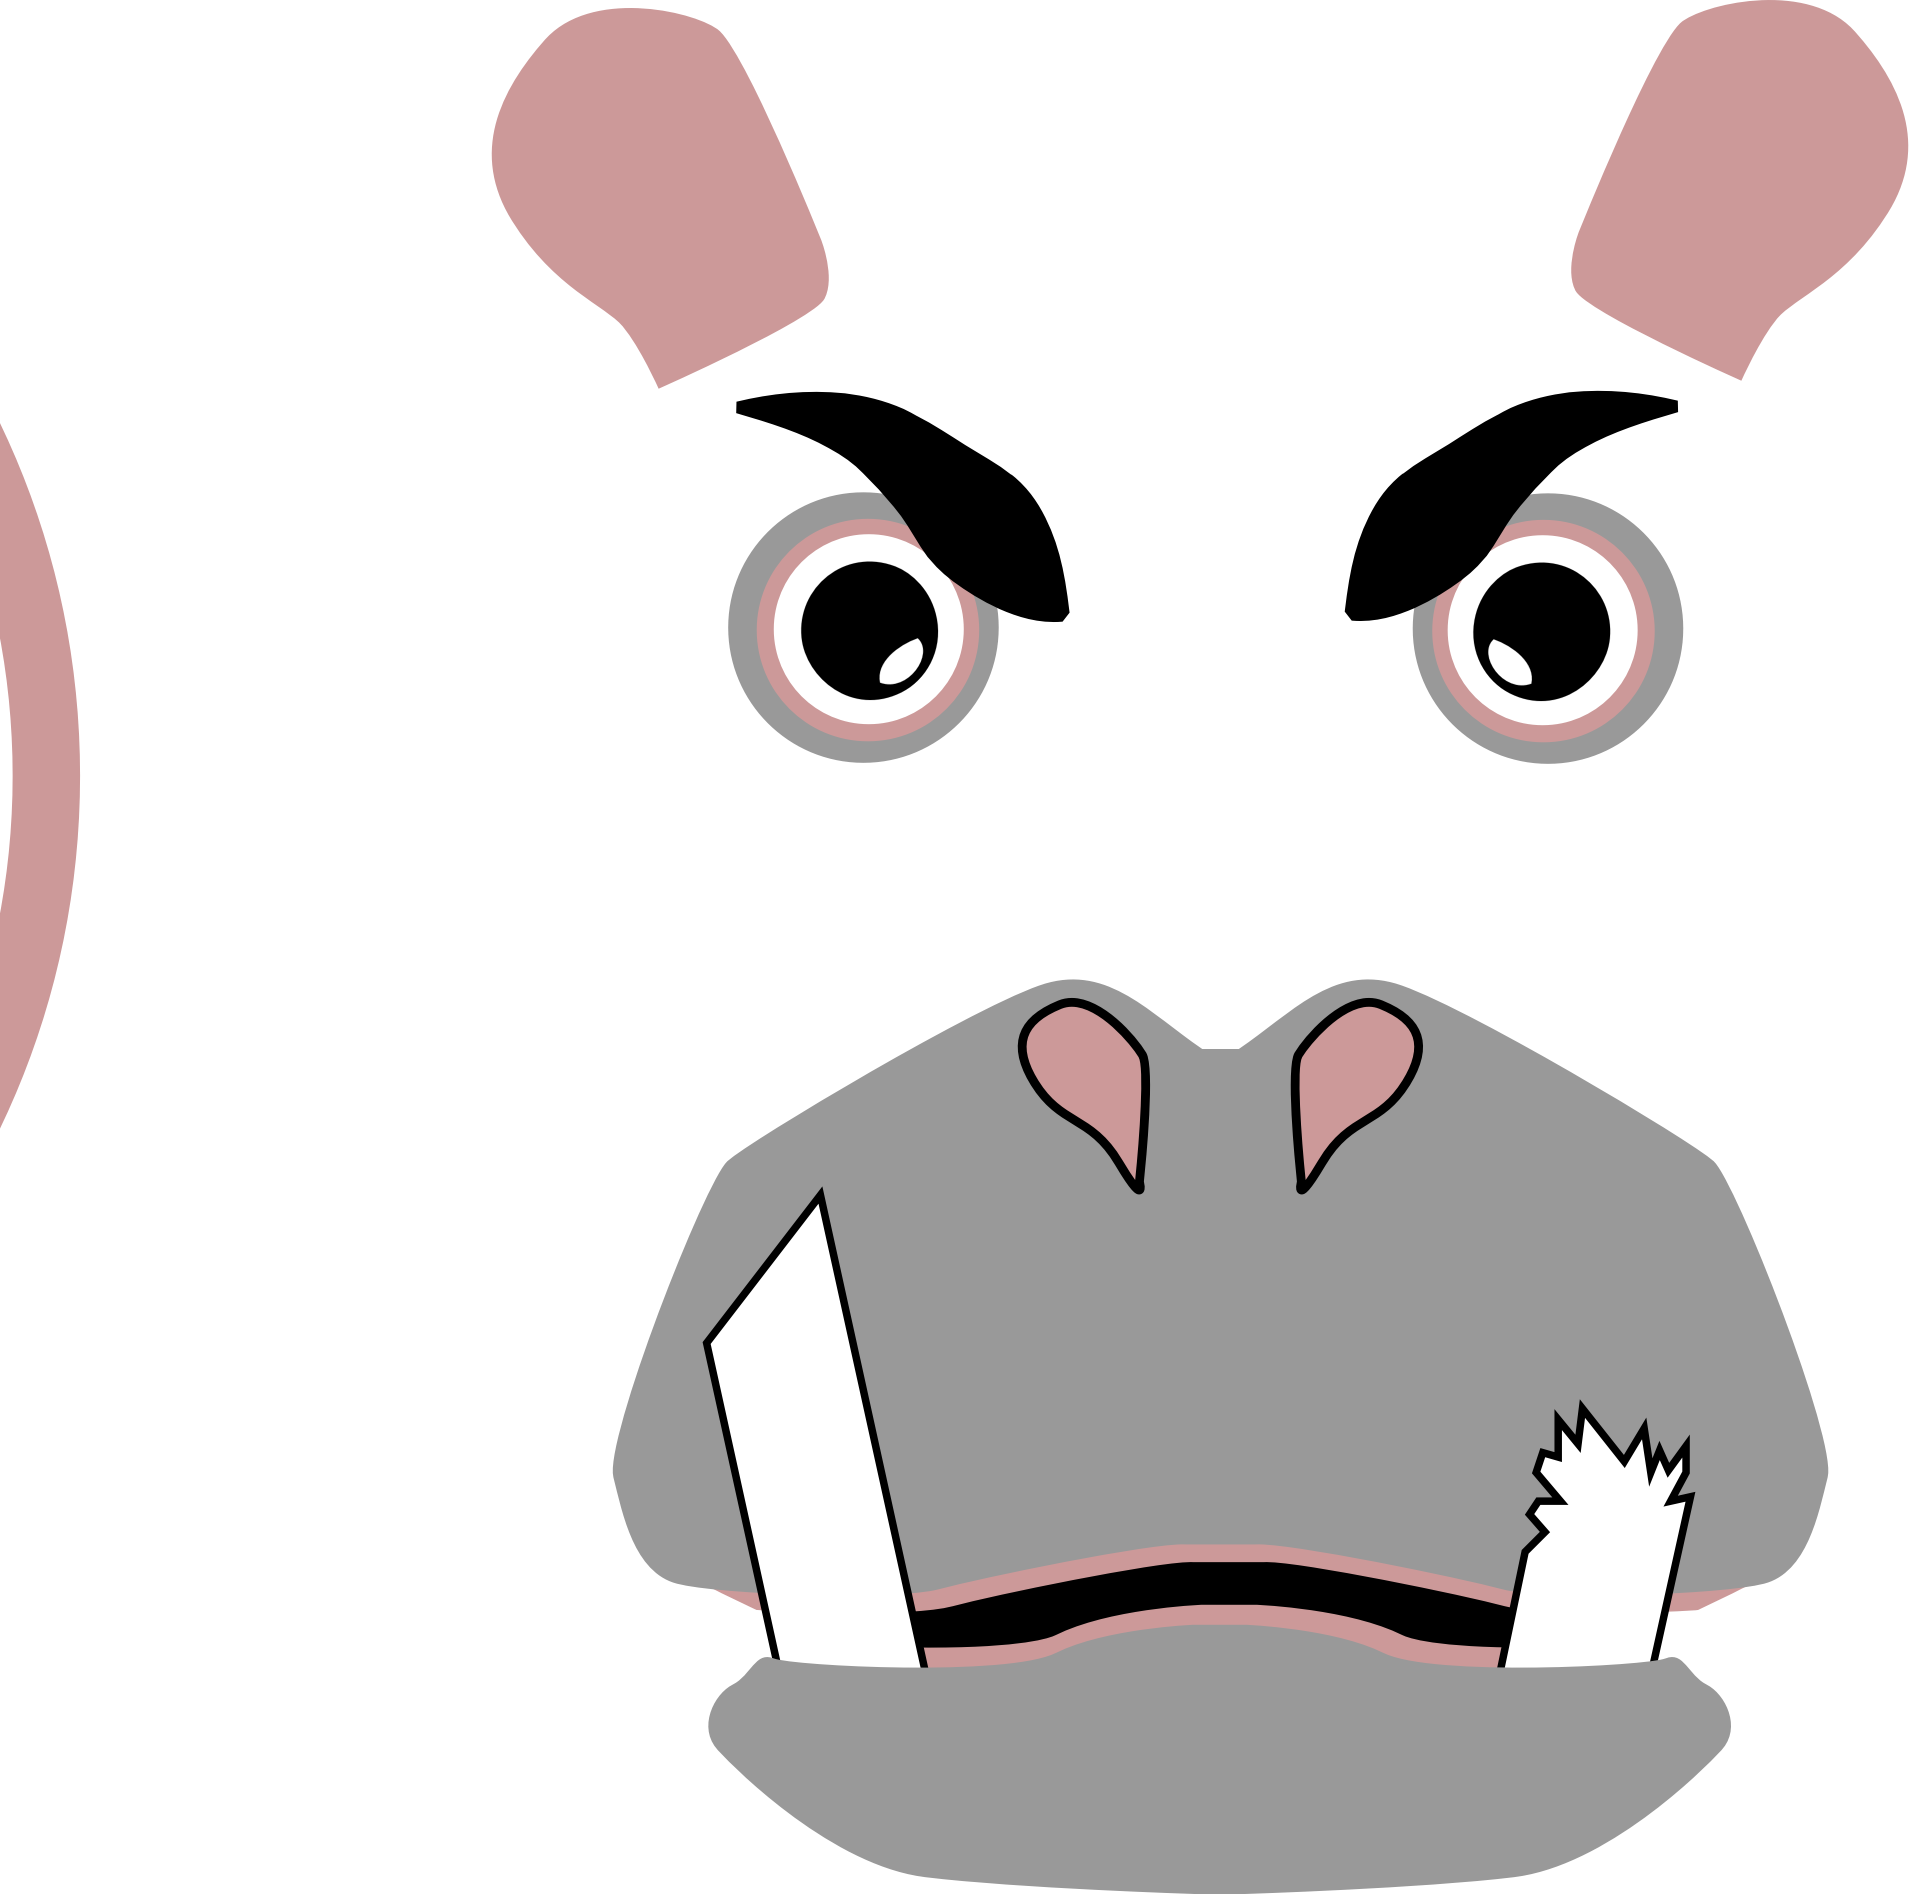 Hippo clipart svg. Angry big image png